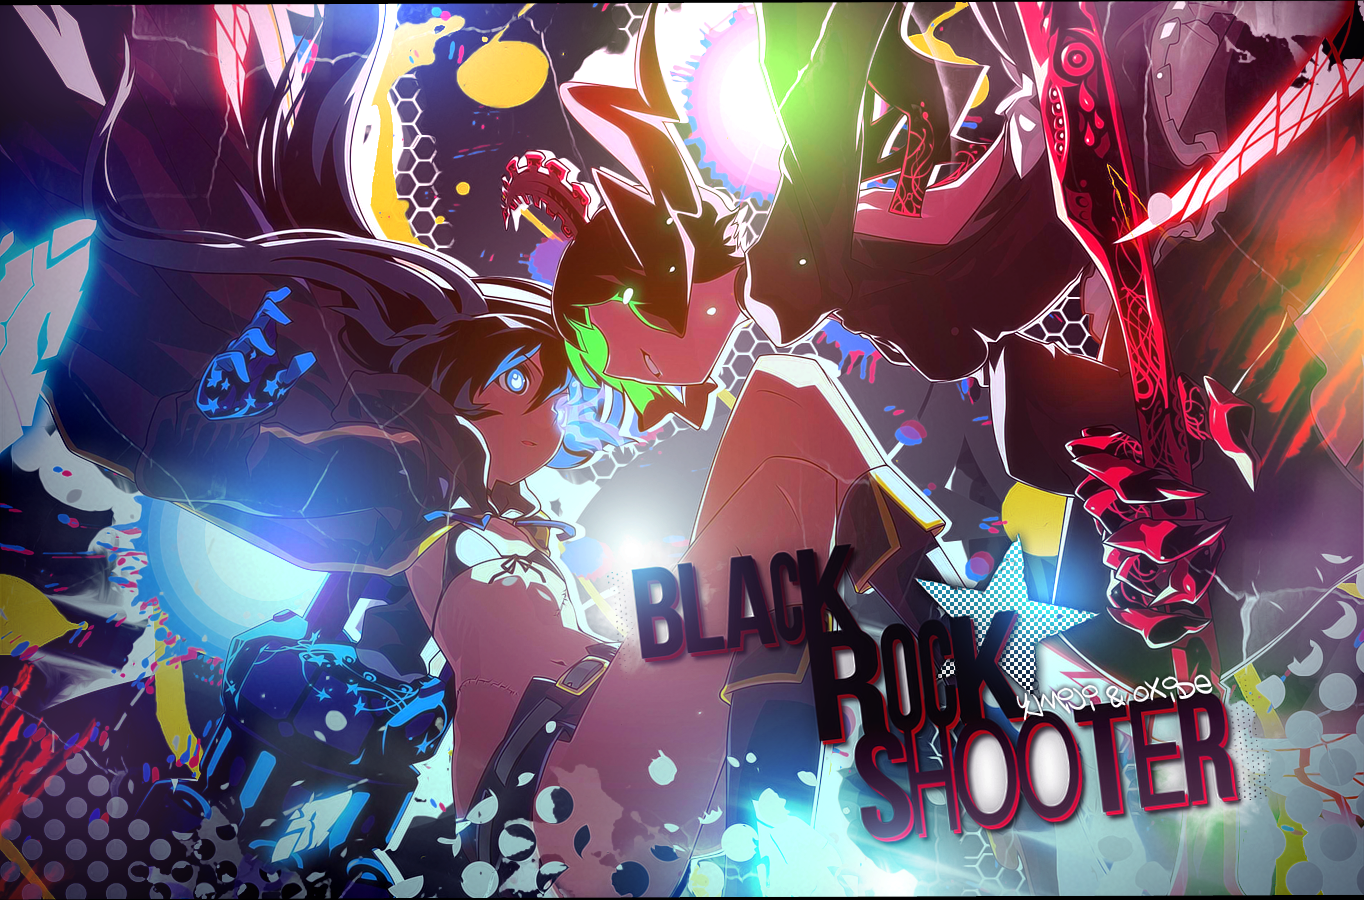 Galerie de Yumiji =) Wallpaper_black_rock_shooter__collab_with_oxide__by_yumijii-d6ma55t